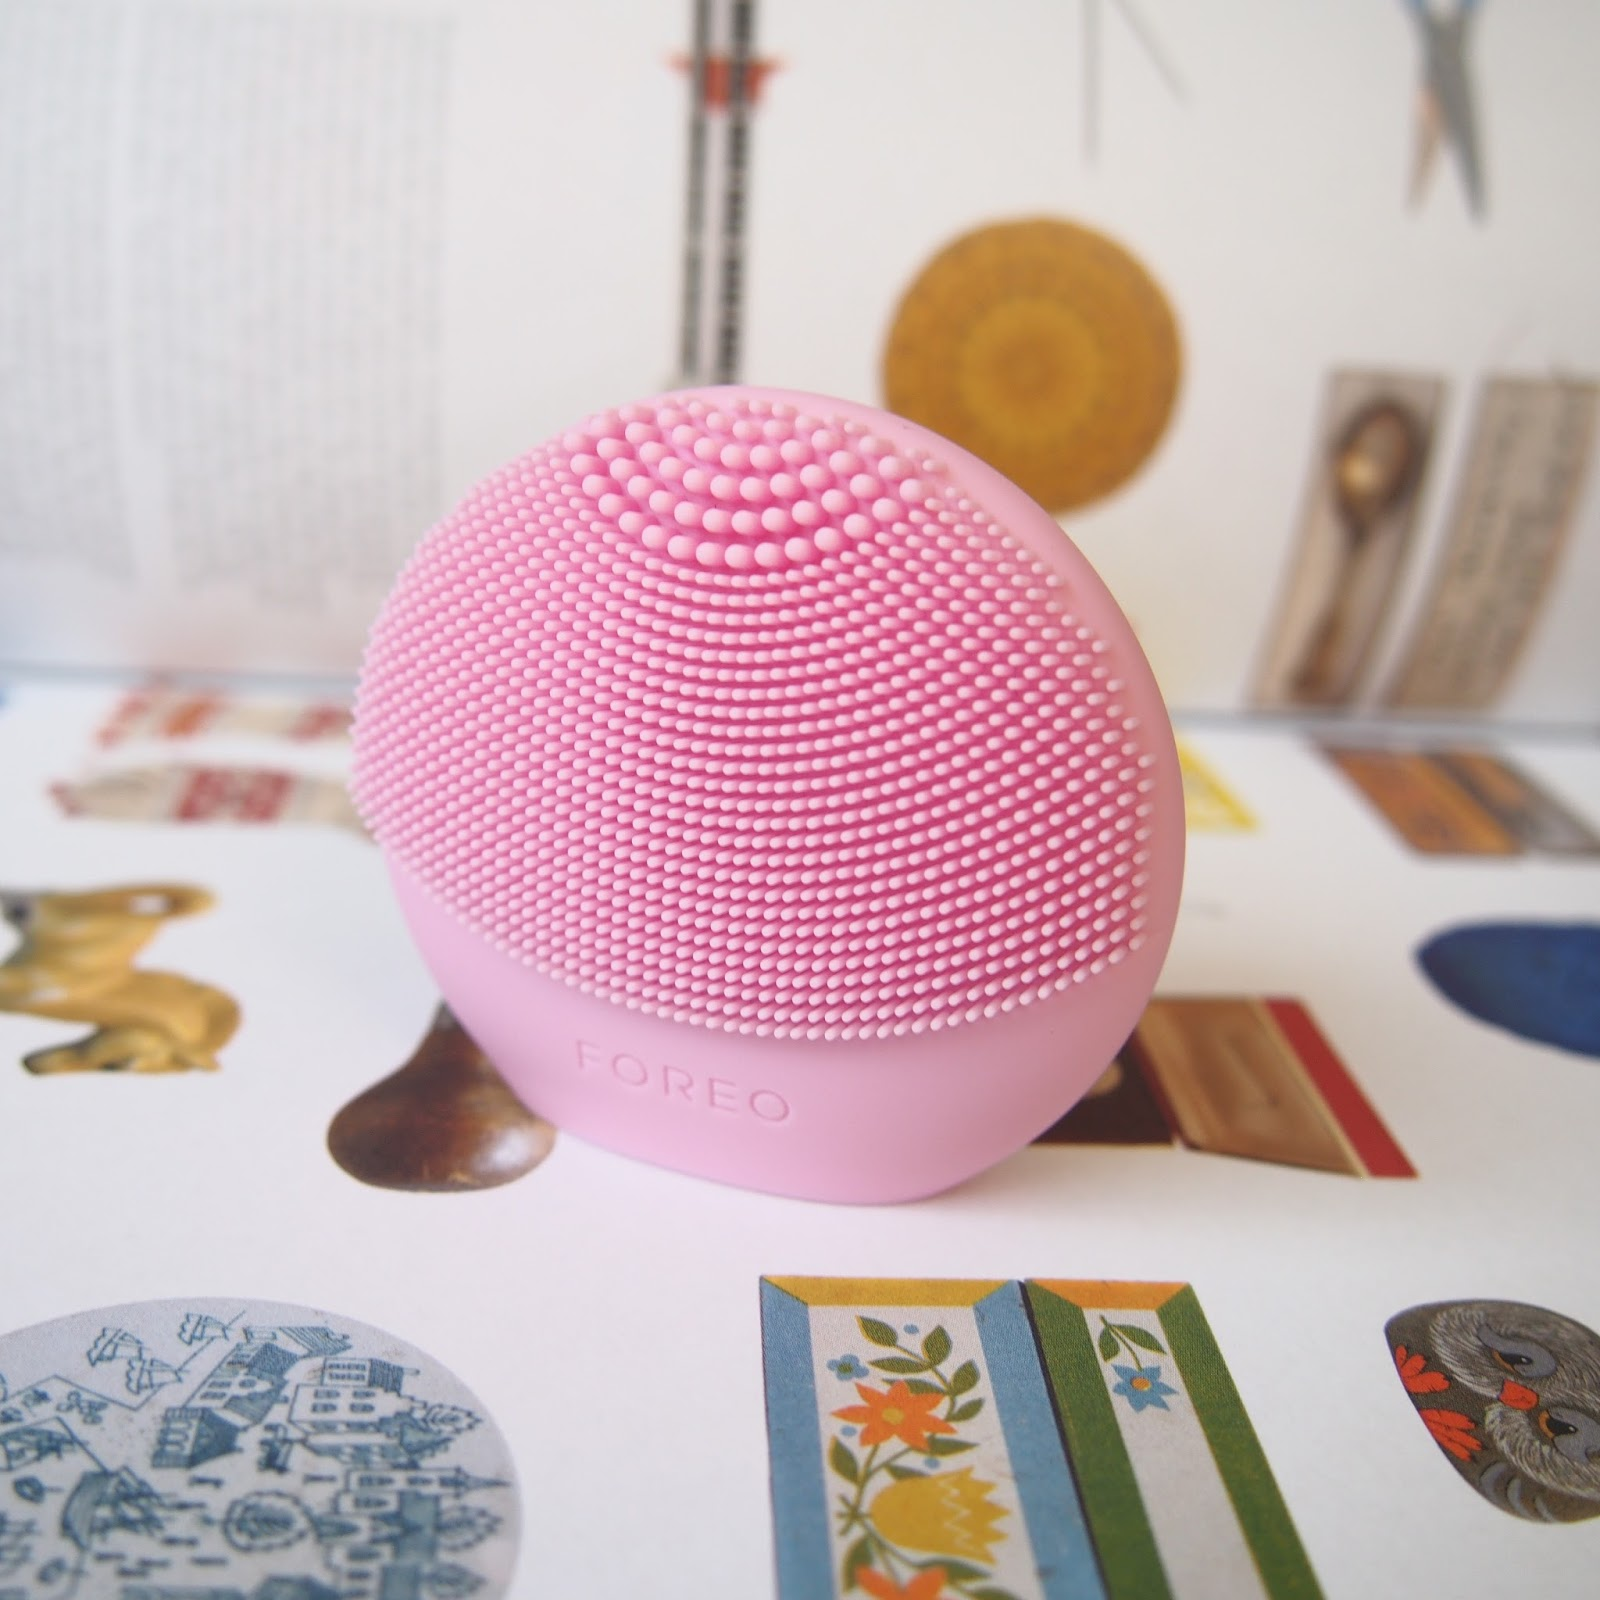 Foreo - Luna reviews, photos, ingredients - MakeupAlley